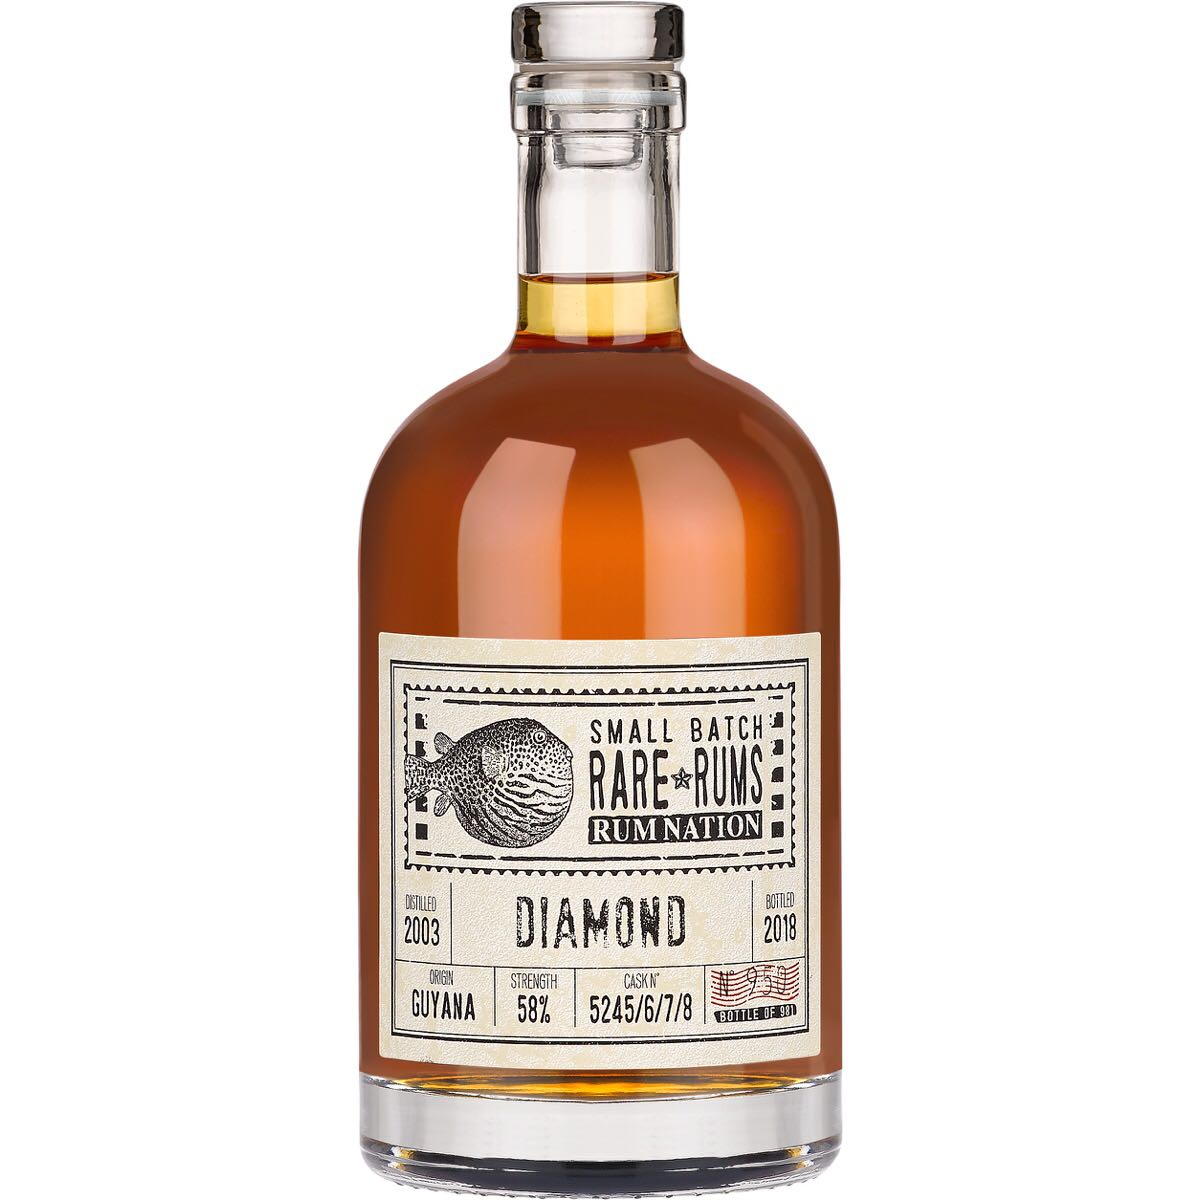 Bottle image of Small Batch Rare Rums SXG